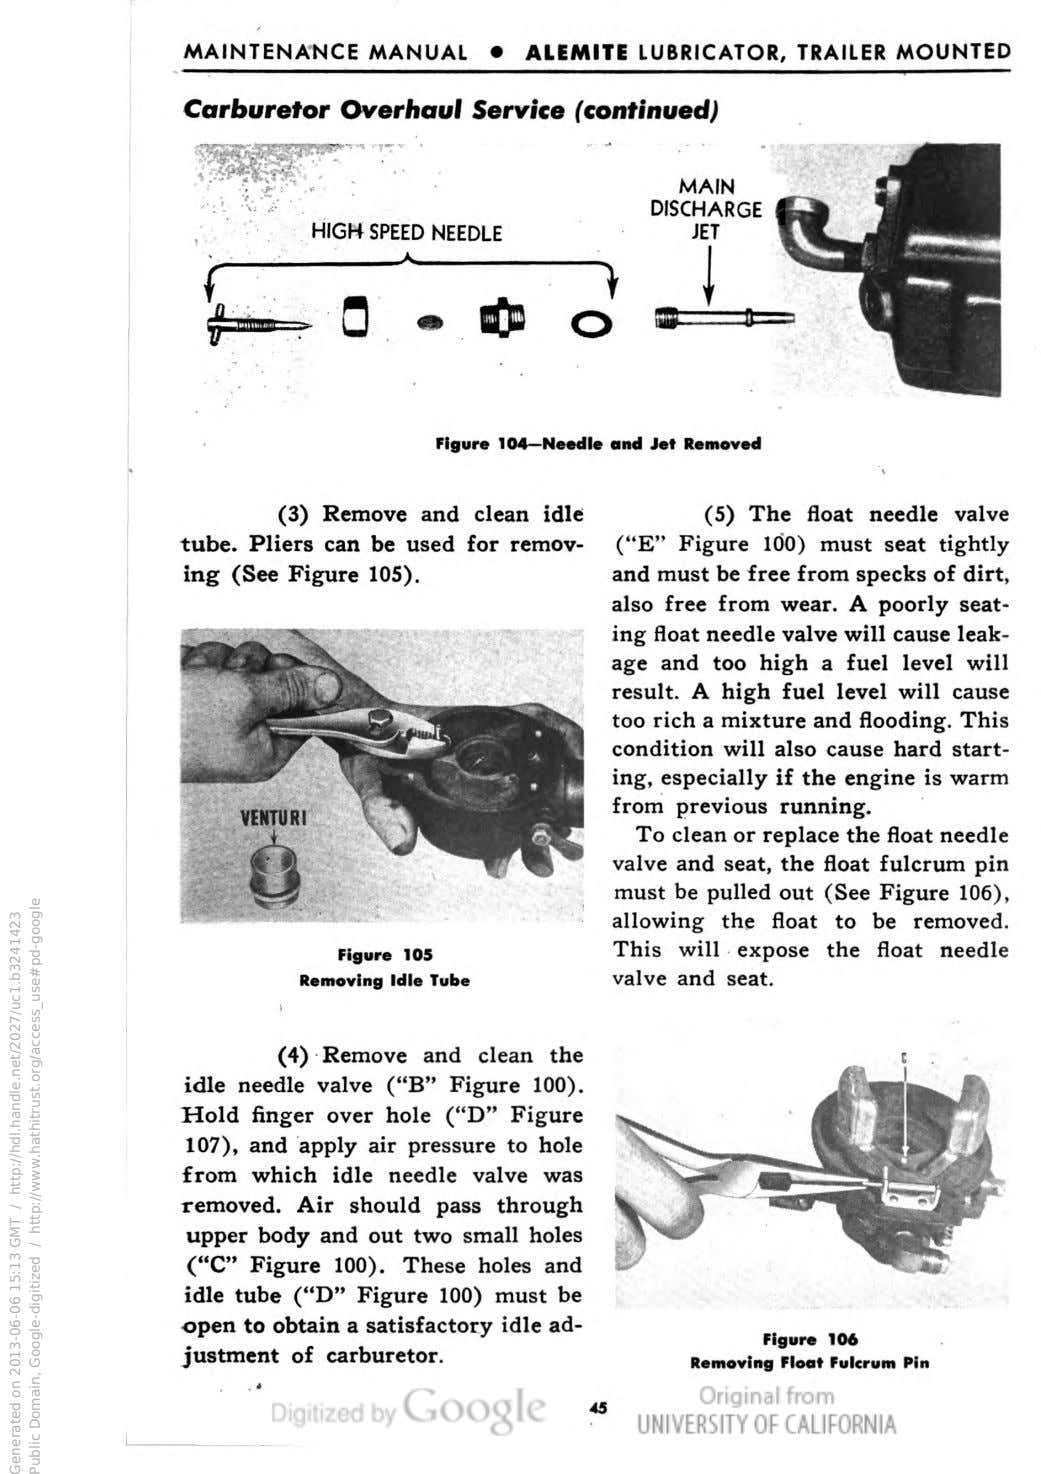 MAINTENANCE MANUAL • ALEMITE LUBRICATOR, TRAILER MOUNTED Carburetor Overhaul Service (continued) f HIGH SPEED NEEDLE